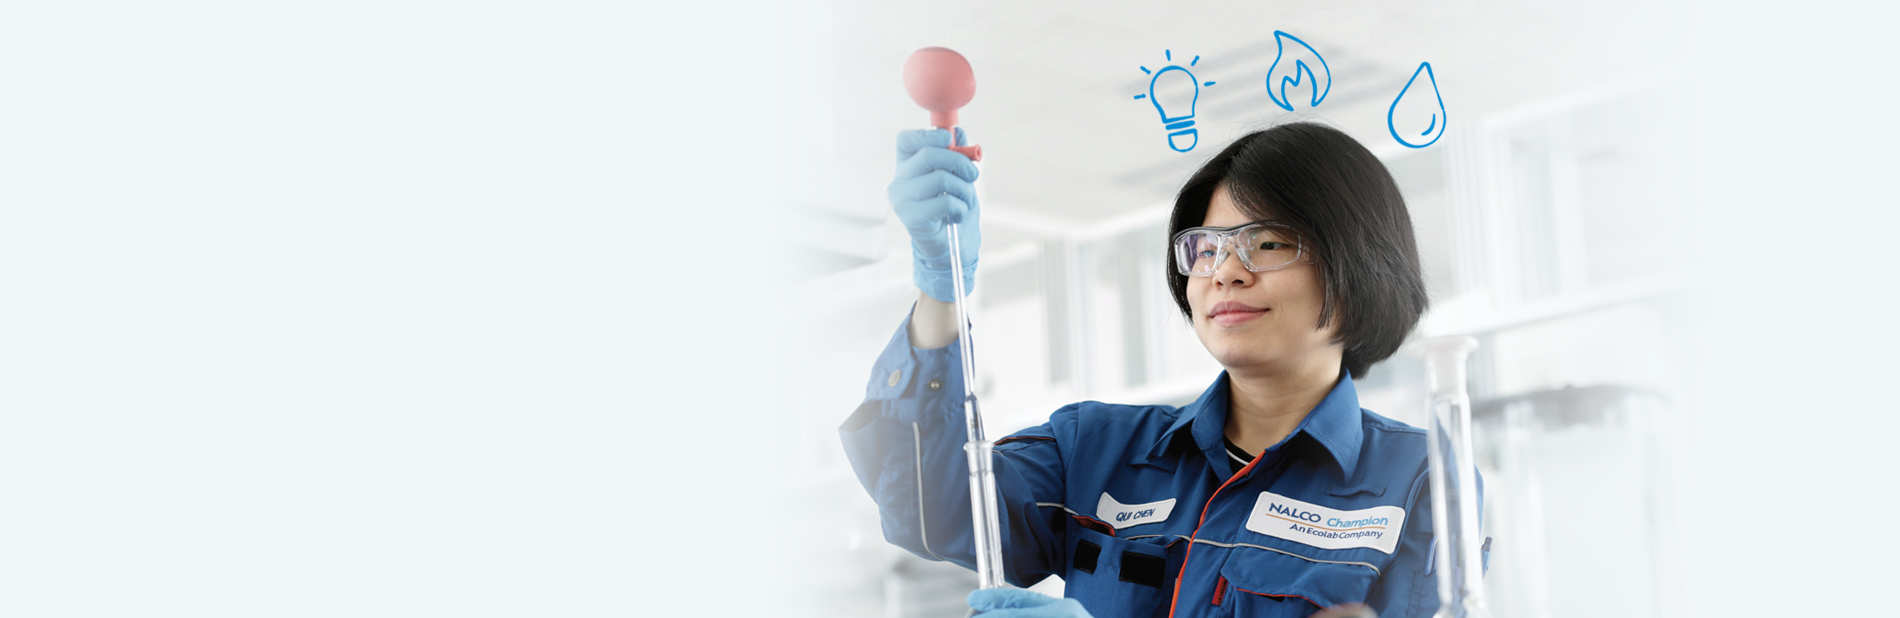 Join a Global Leader | Ecolab Careers